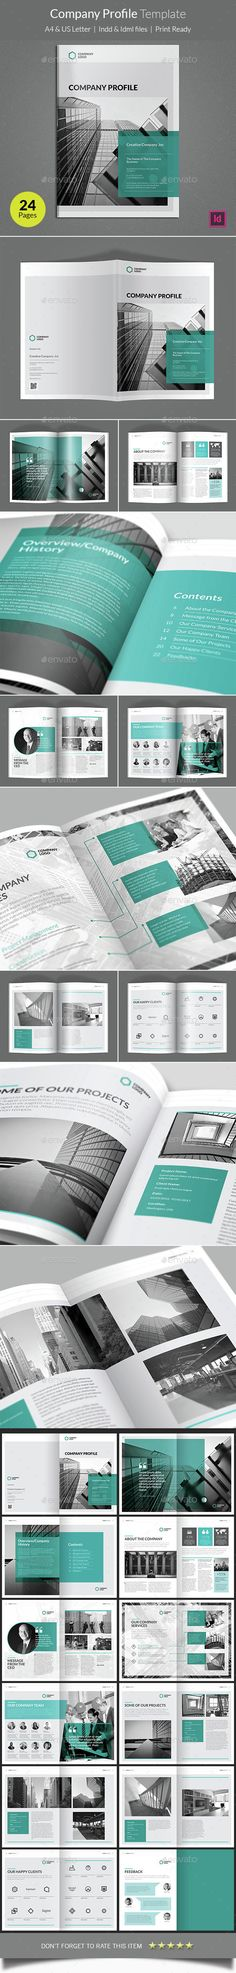 Company Profile Brochure Template InDesign INDD. Download here: http ...